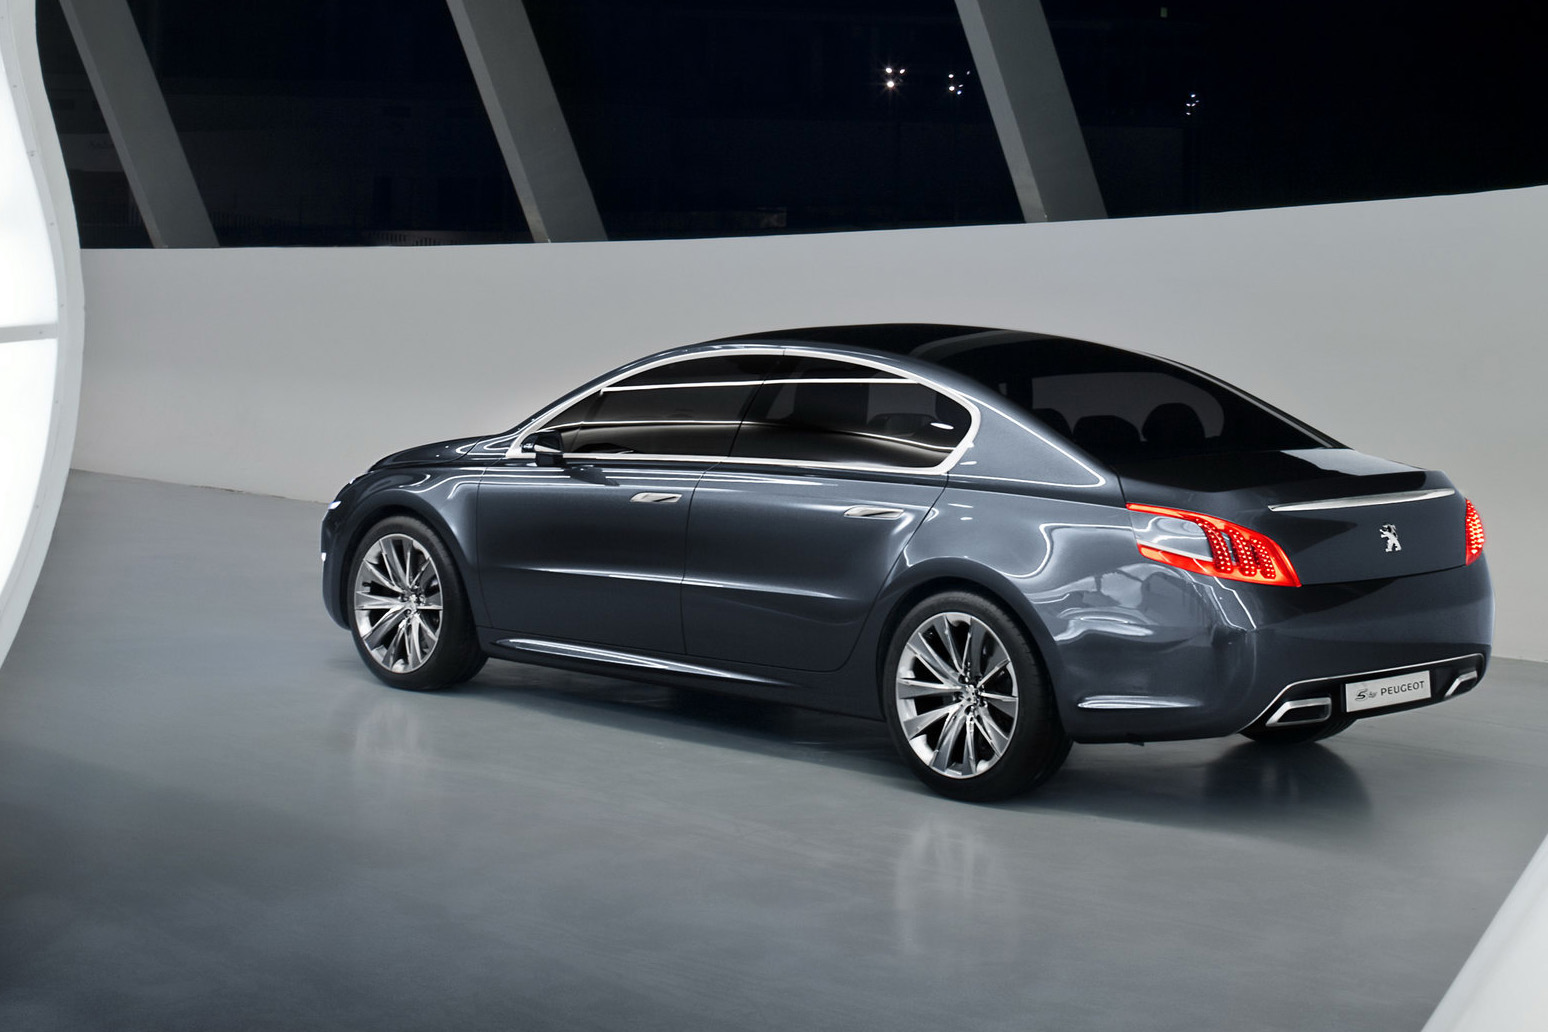 Peugeot to Produce Two New Car Models in Kostanai - The ...